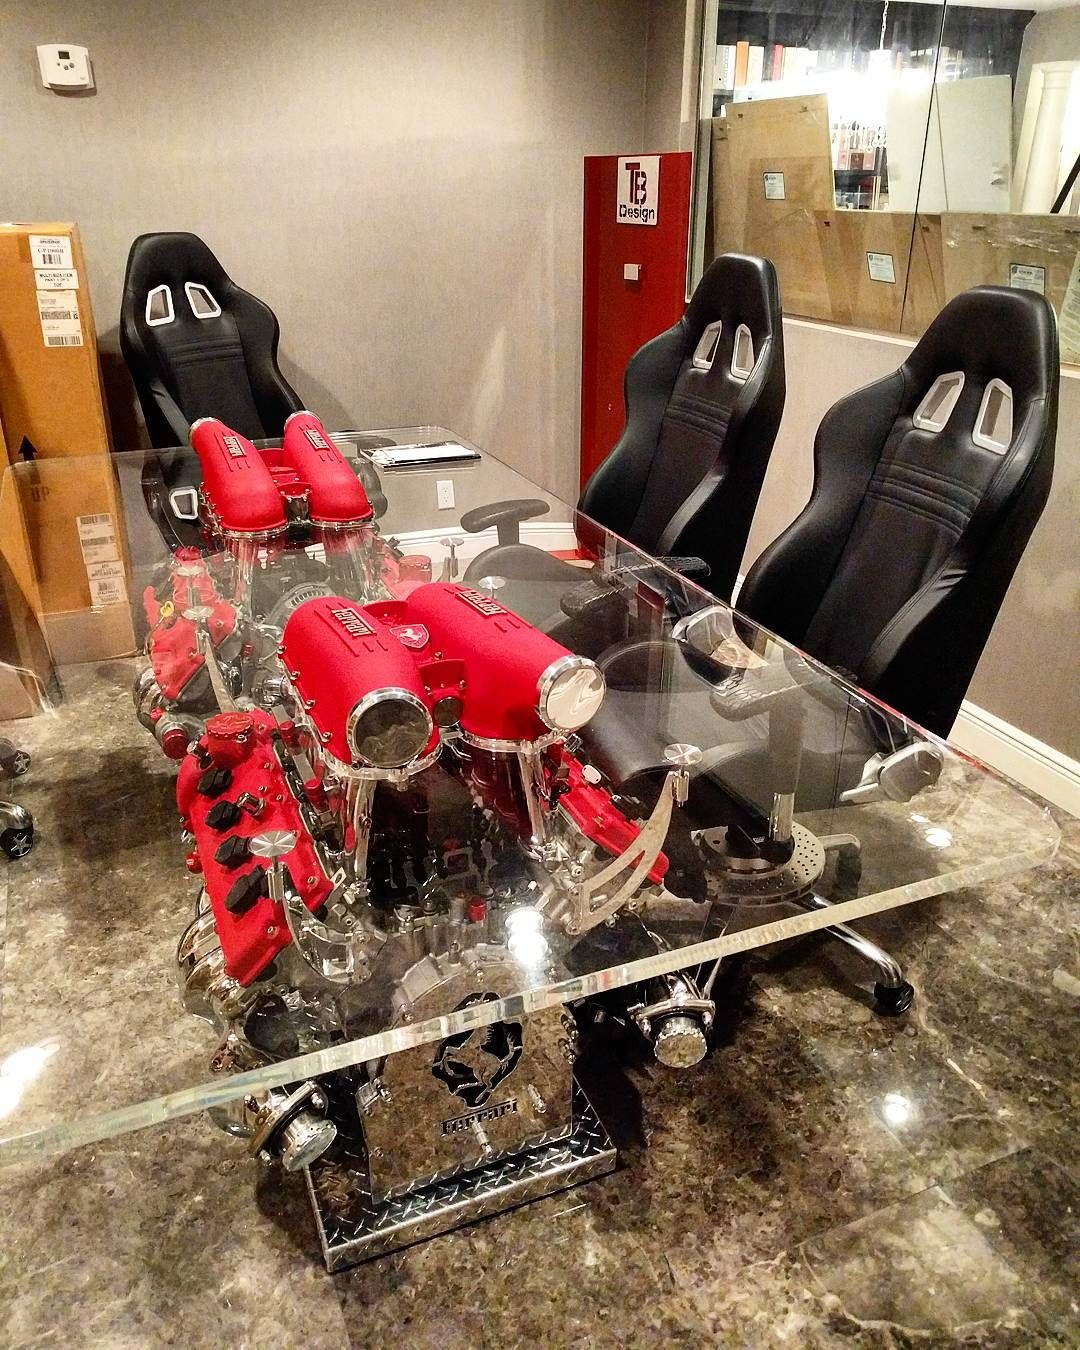 Ferrari Office Chair Egg Cover For Sale Our Racing Chairs Look Great When You Tuck Them In